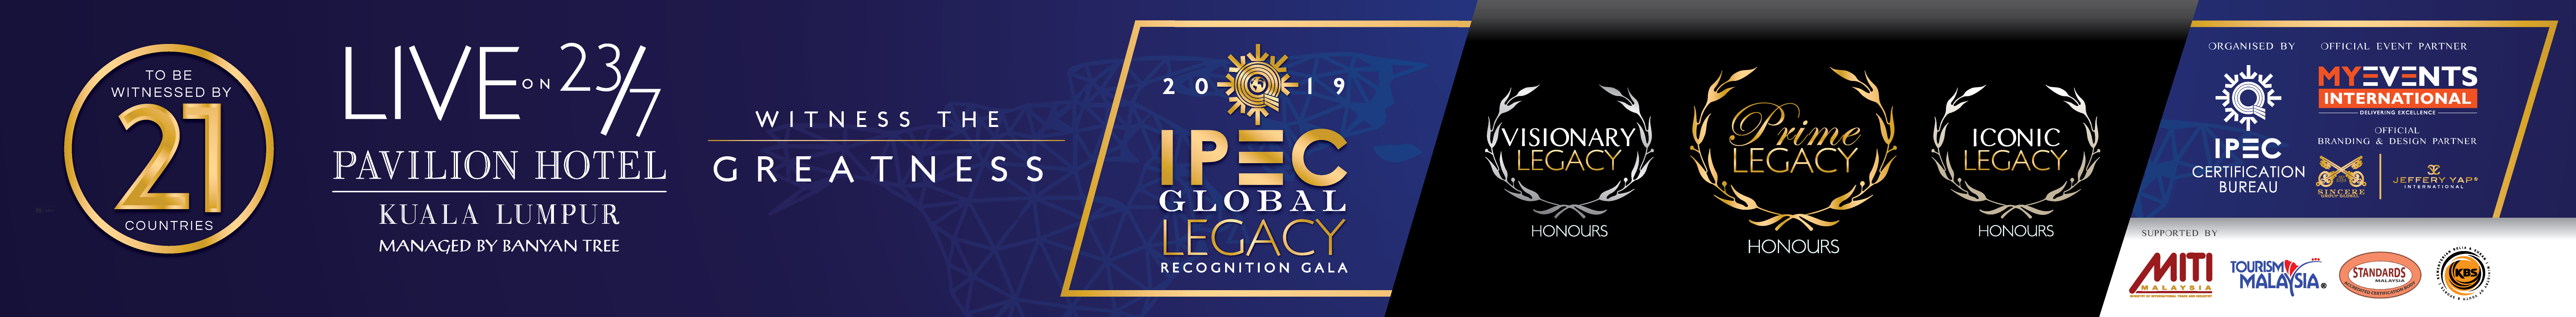 IPEC LEGACY AWARDS